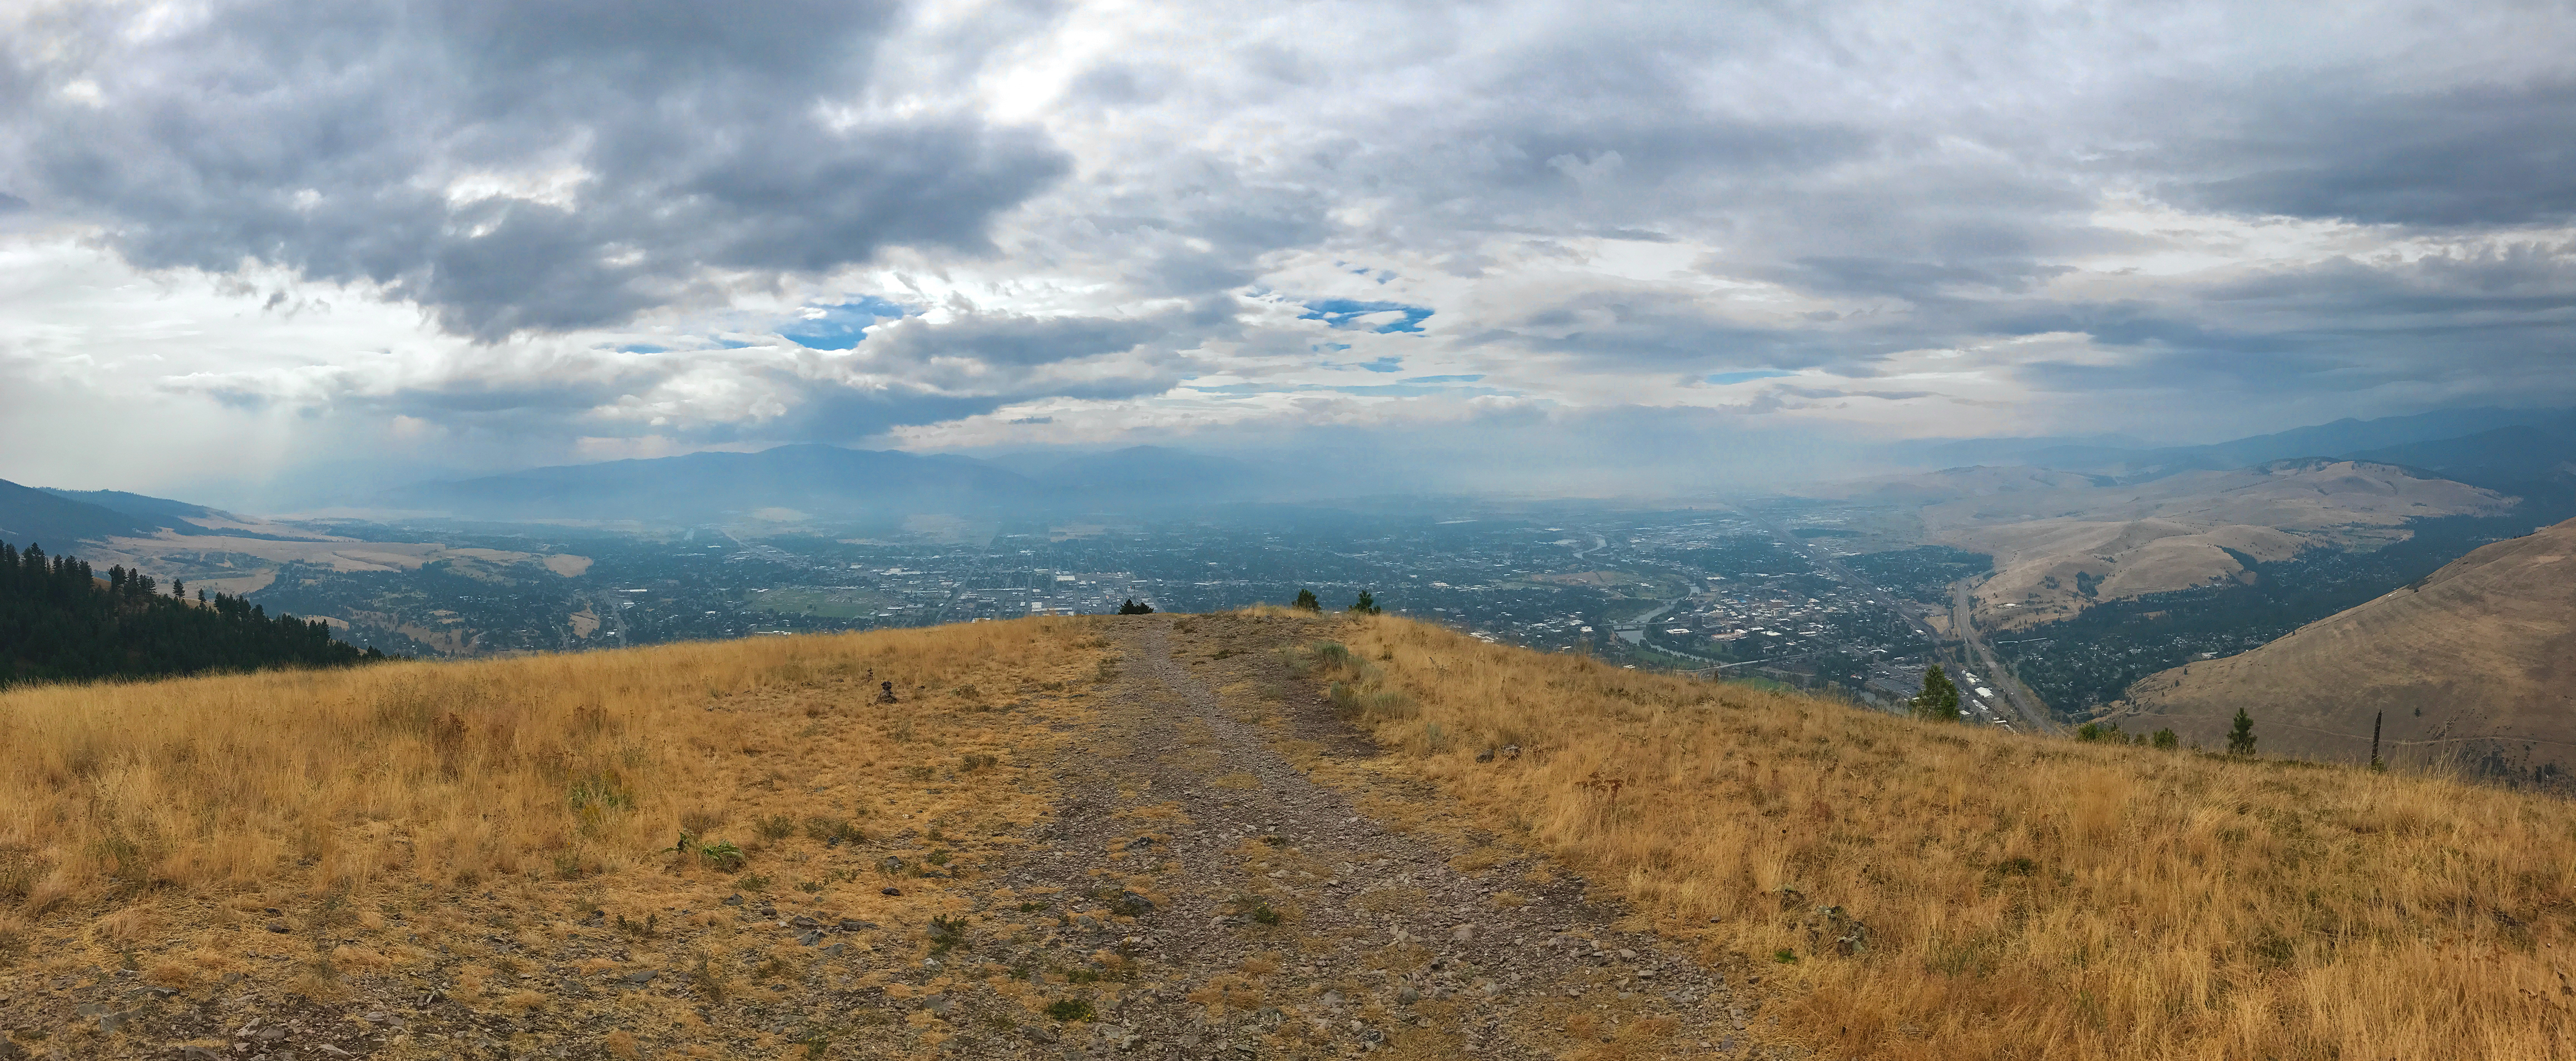 Missoula from Mount Sentinel